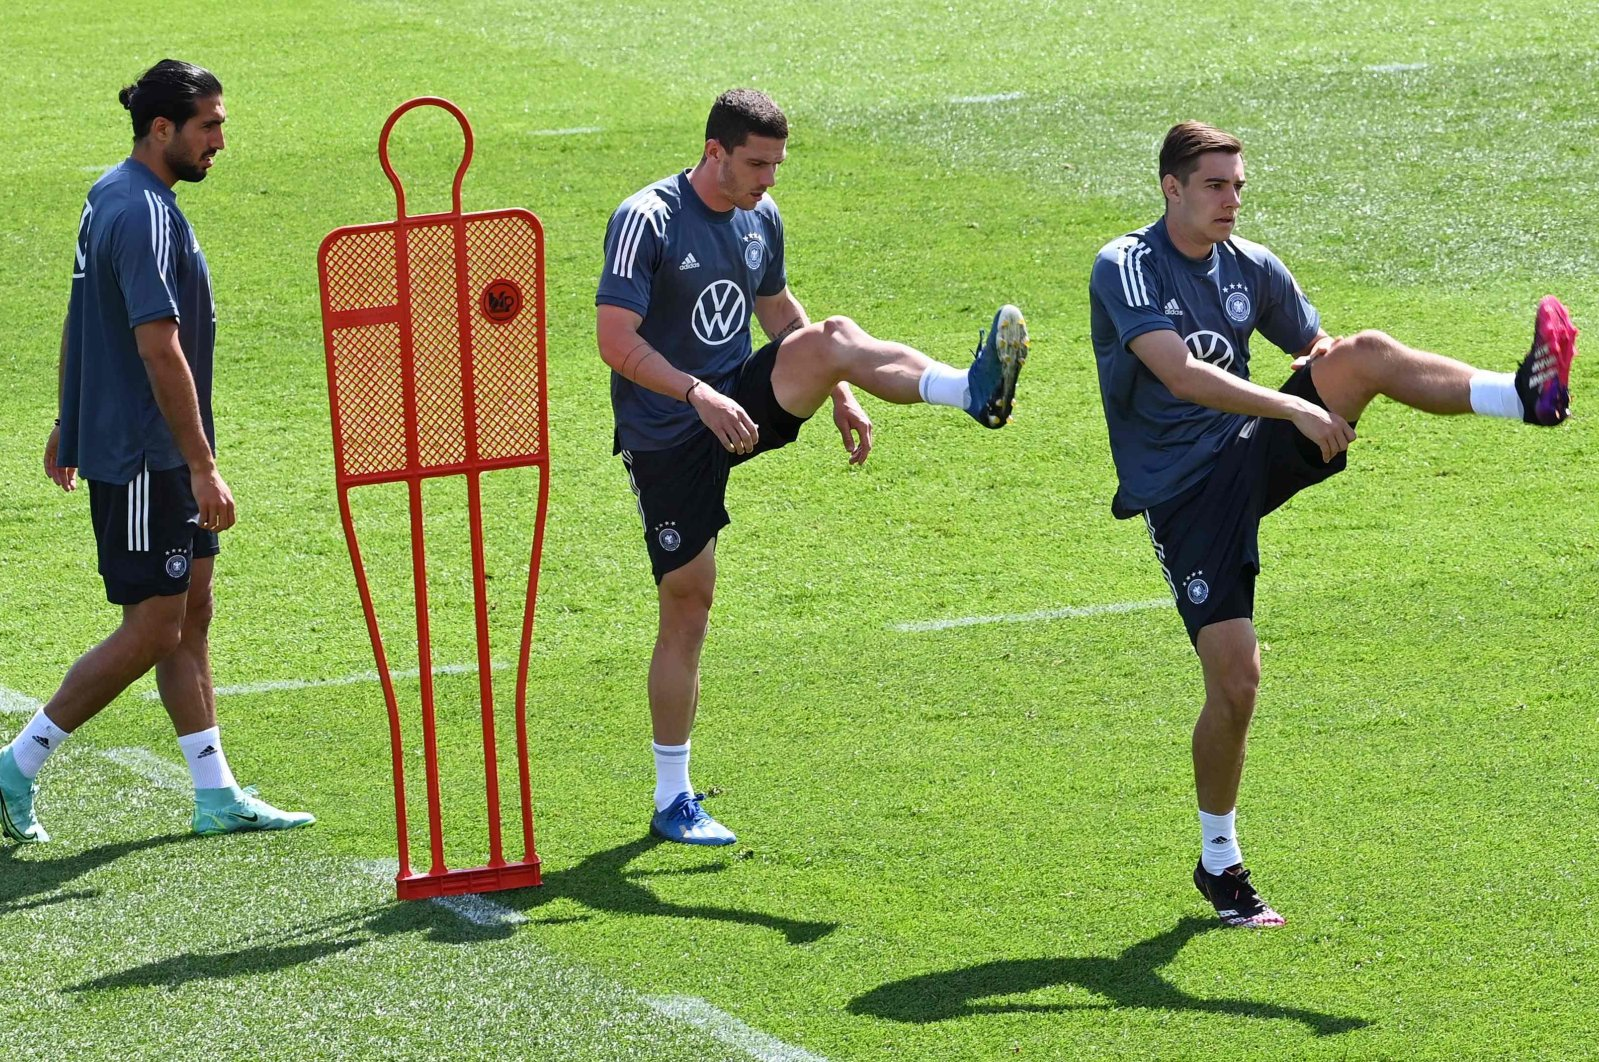 German players attend a training session in Herzogenaurach, Germany, on June 13, 2021. (AFP Photo)